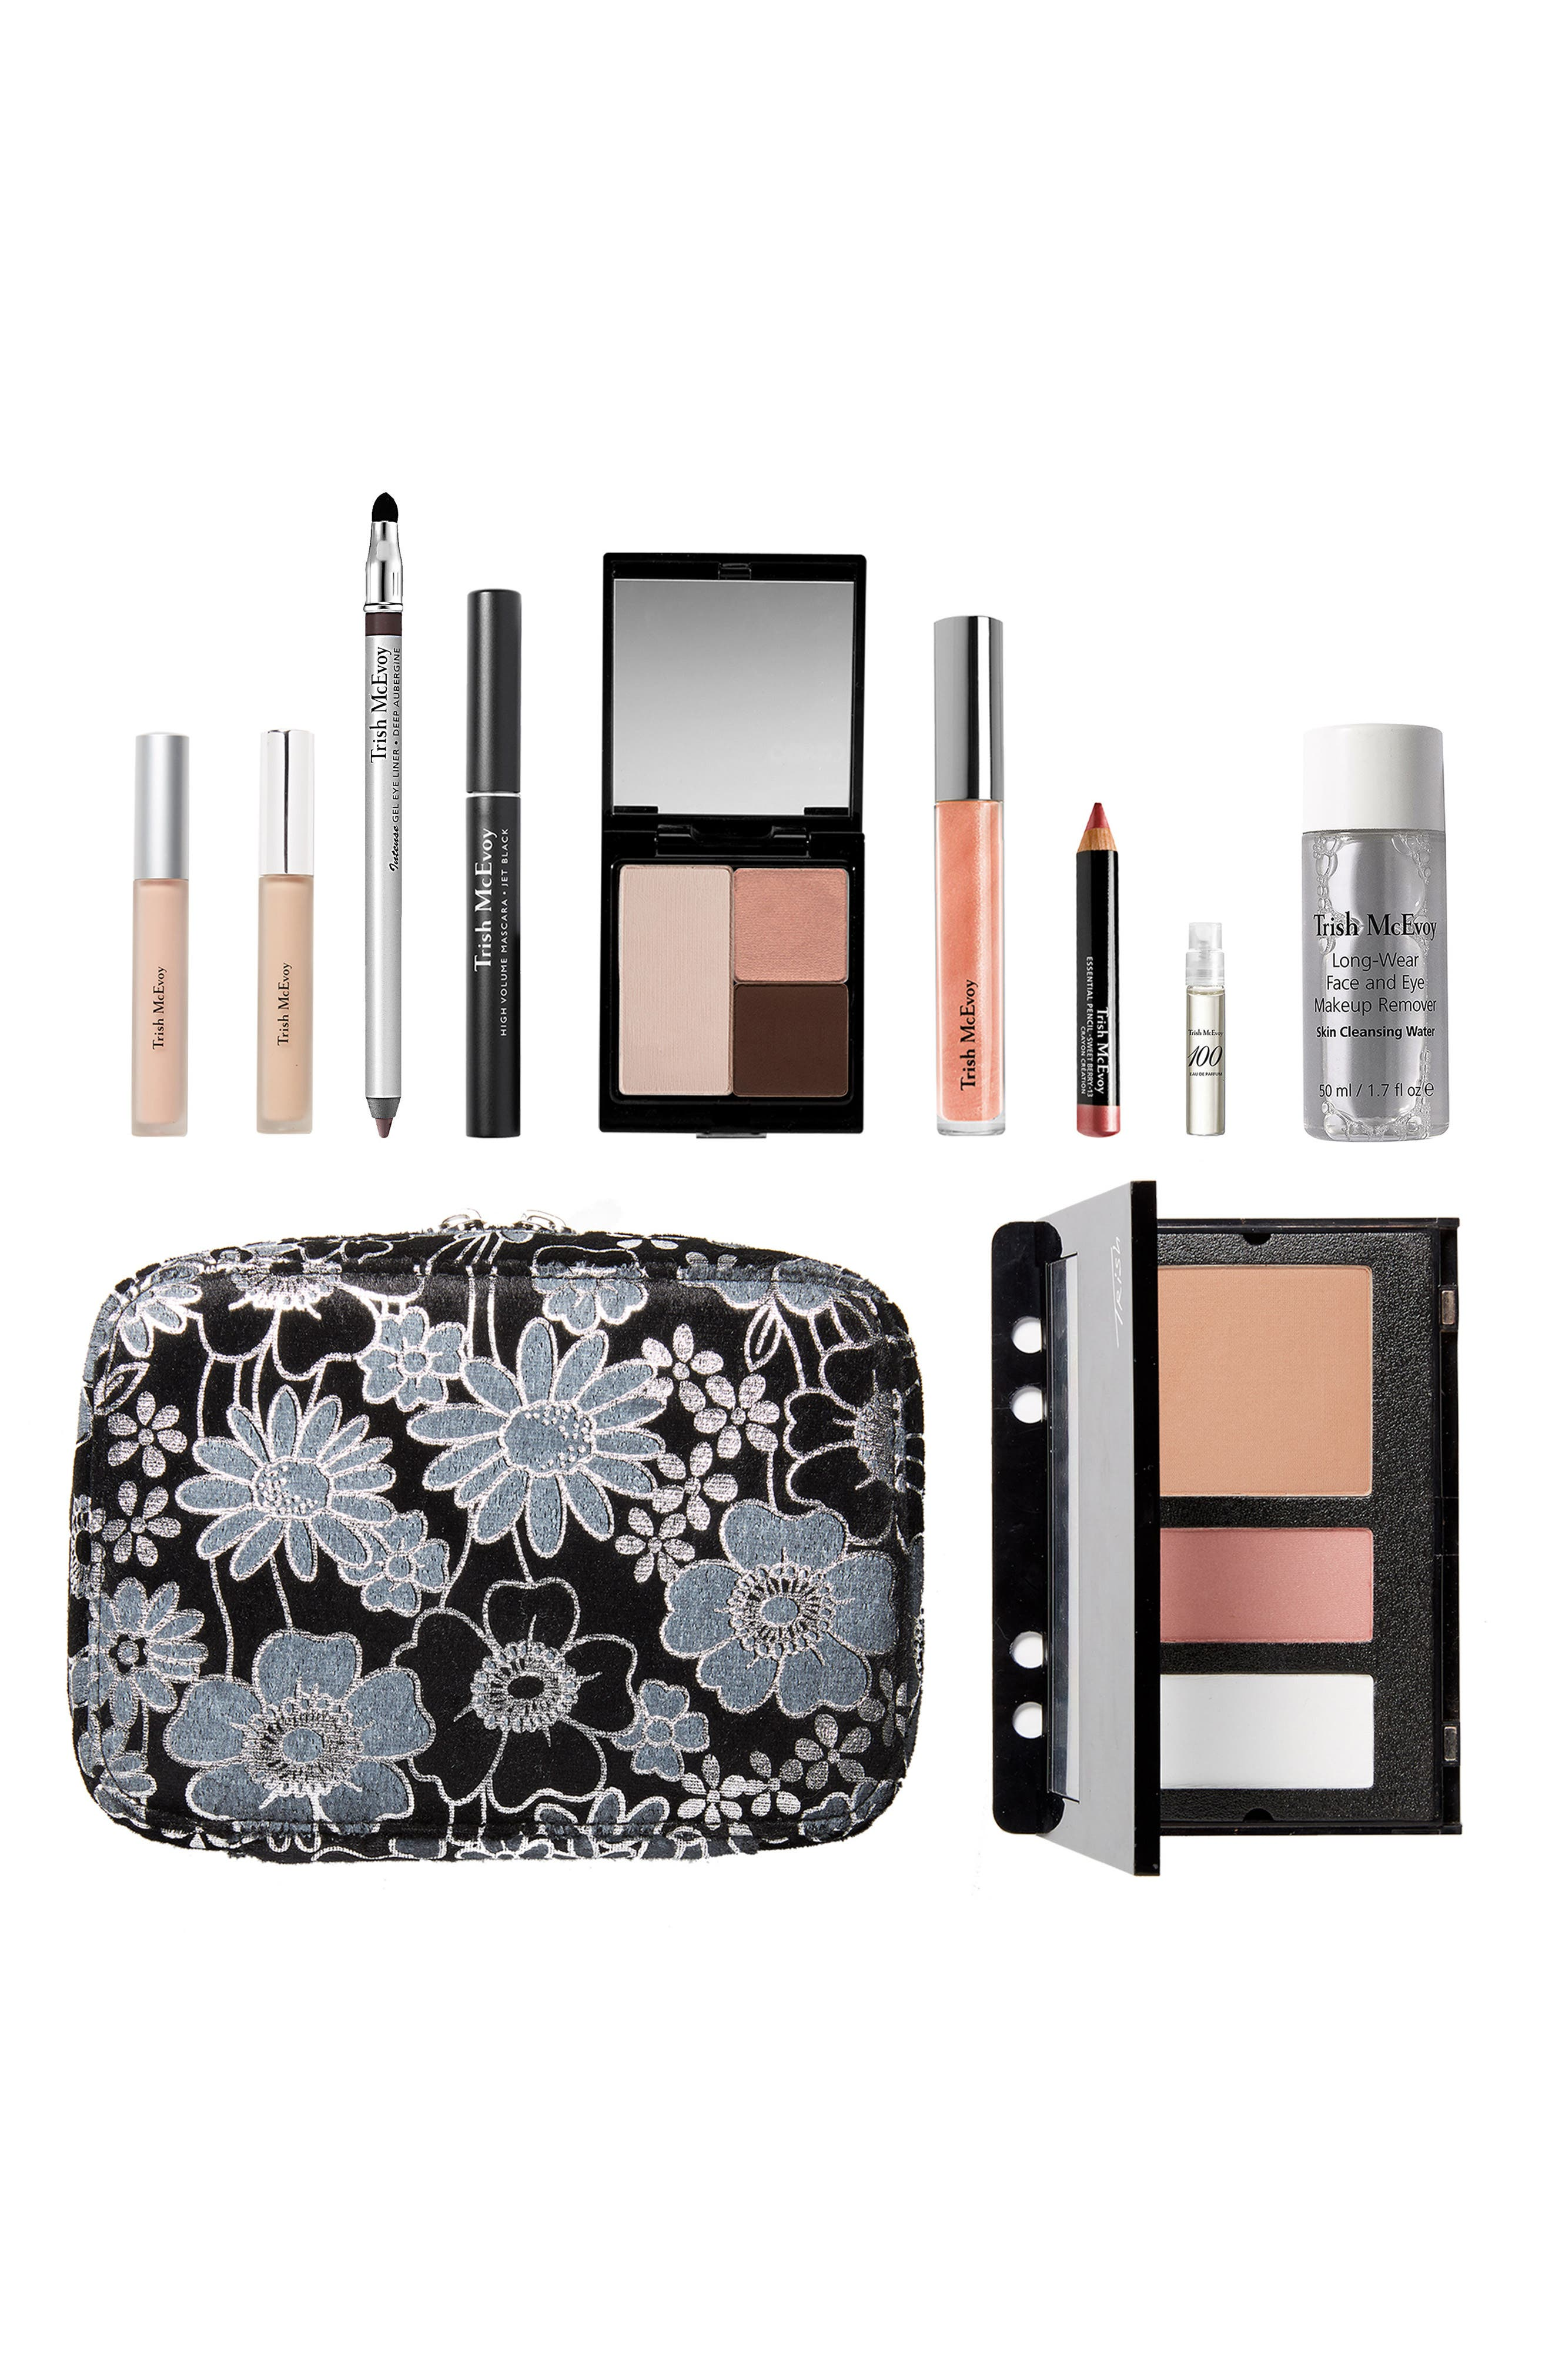 Trish McEvoy Holiday 2017 Makeup Planner® Collection (Nordstrom Exclusive) ($487.50 Value)